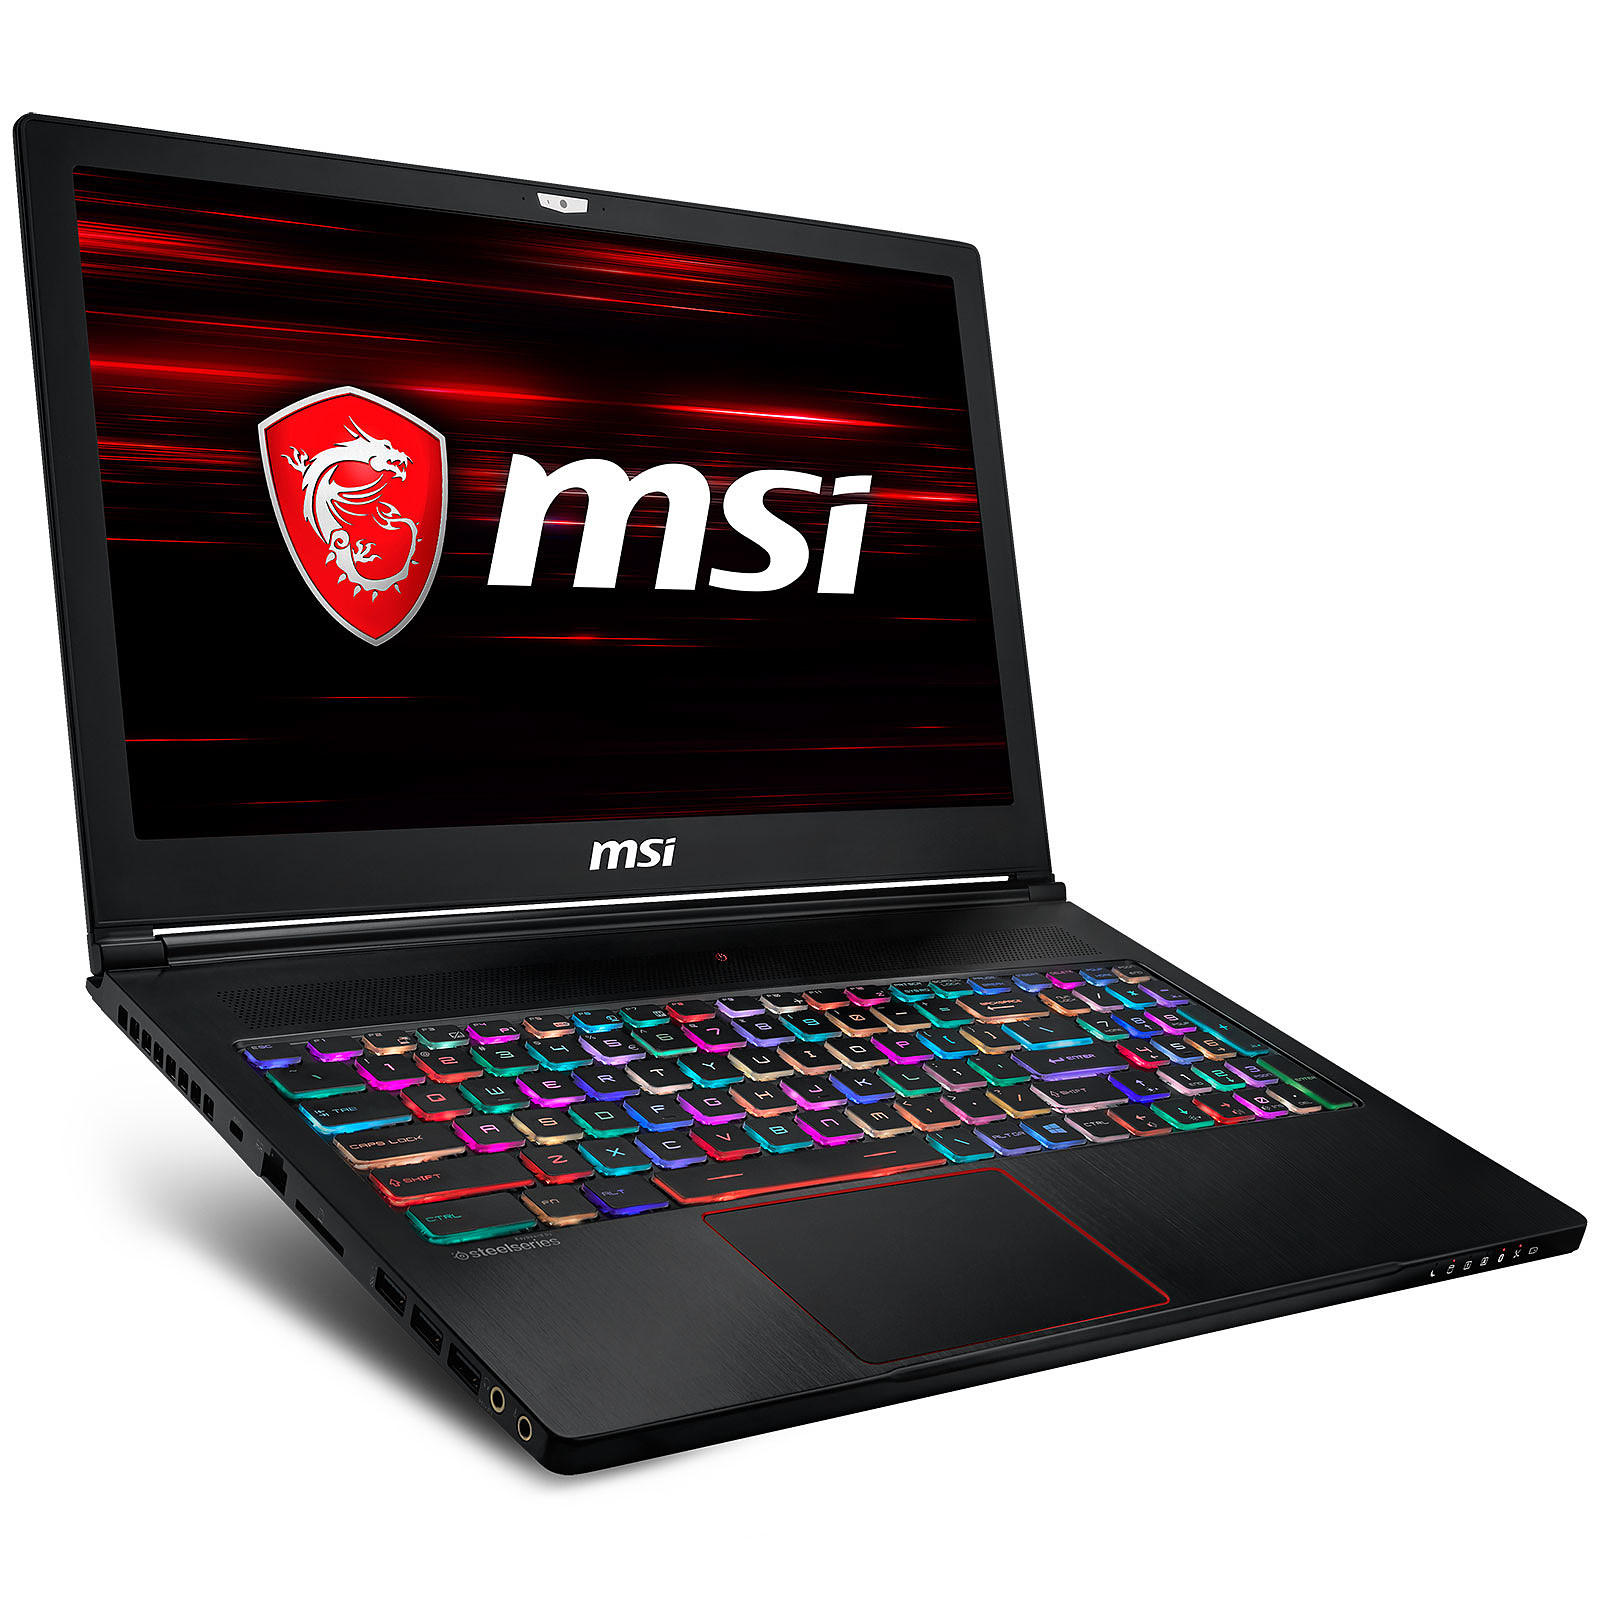 MSI GS63 Stealth 8RE-012XES